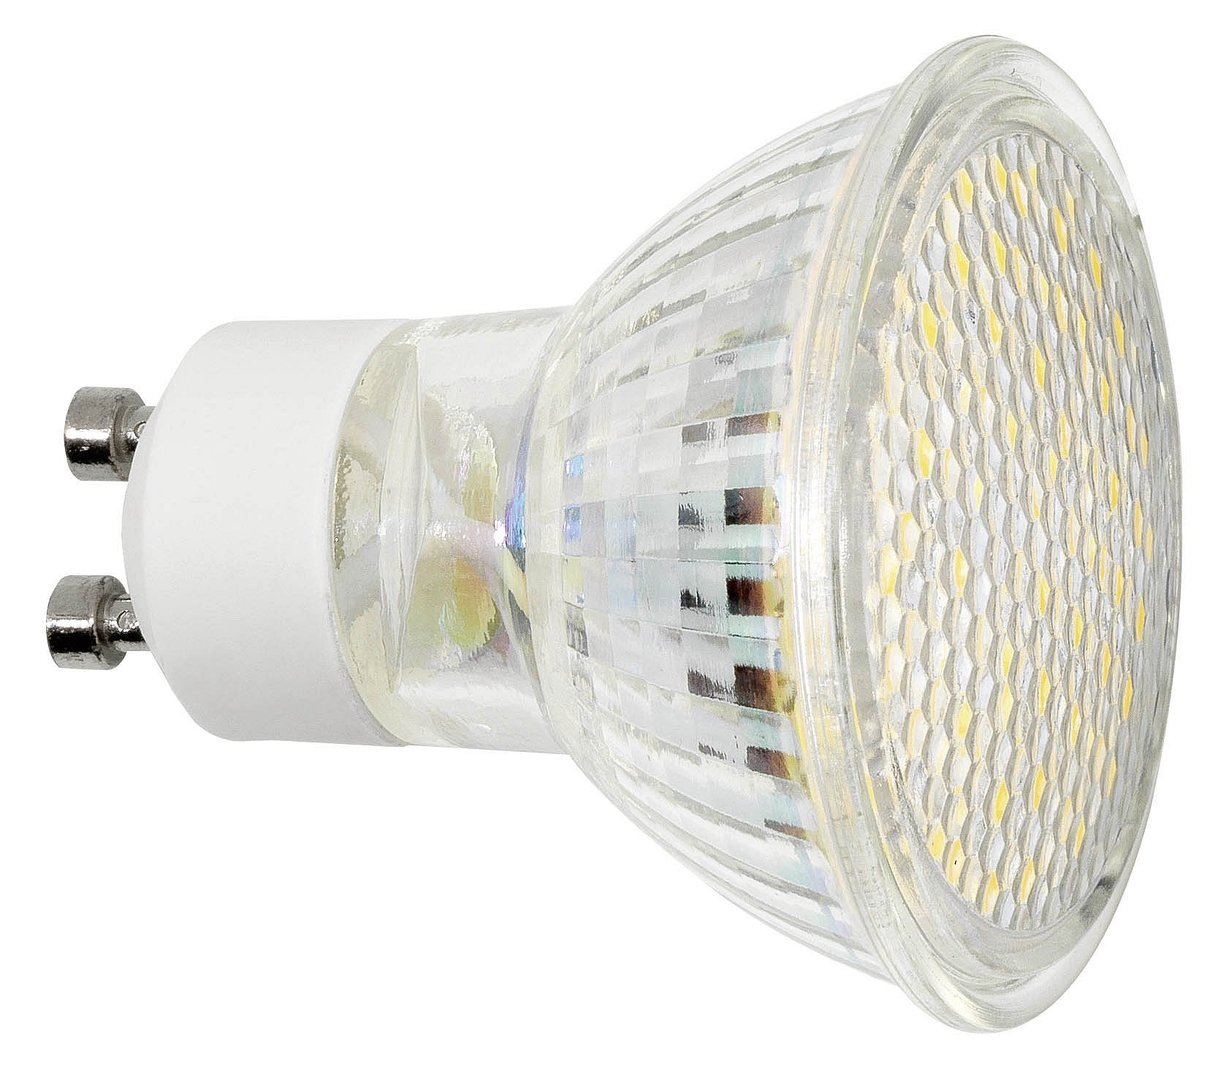 LED-Lampe | ORANIER 2,8 Watt | Warmweiß